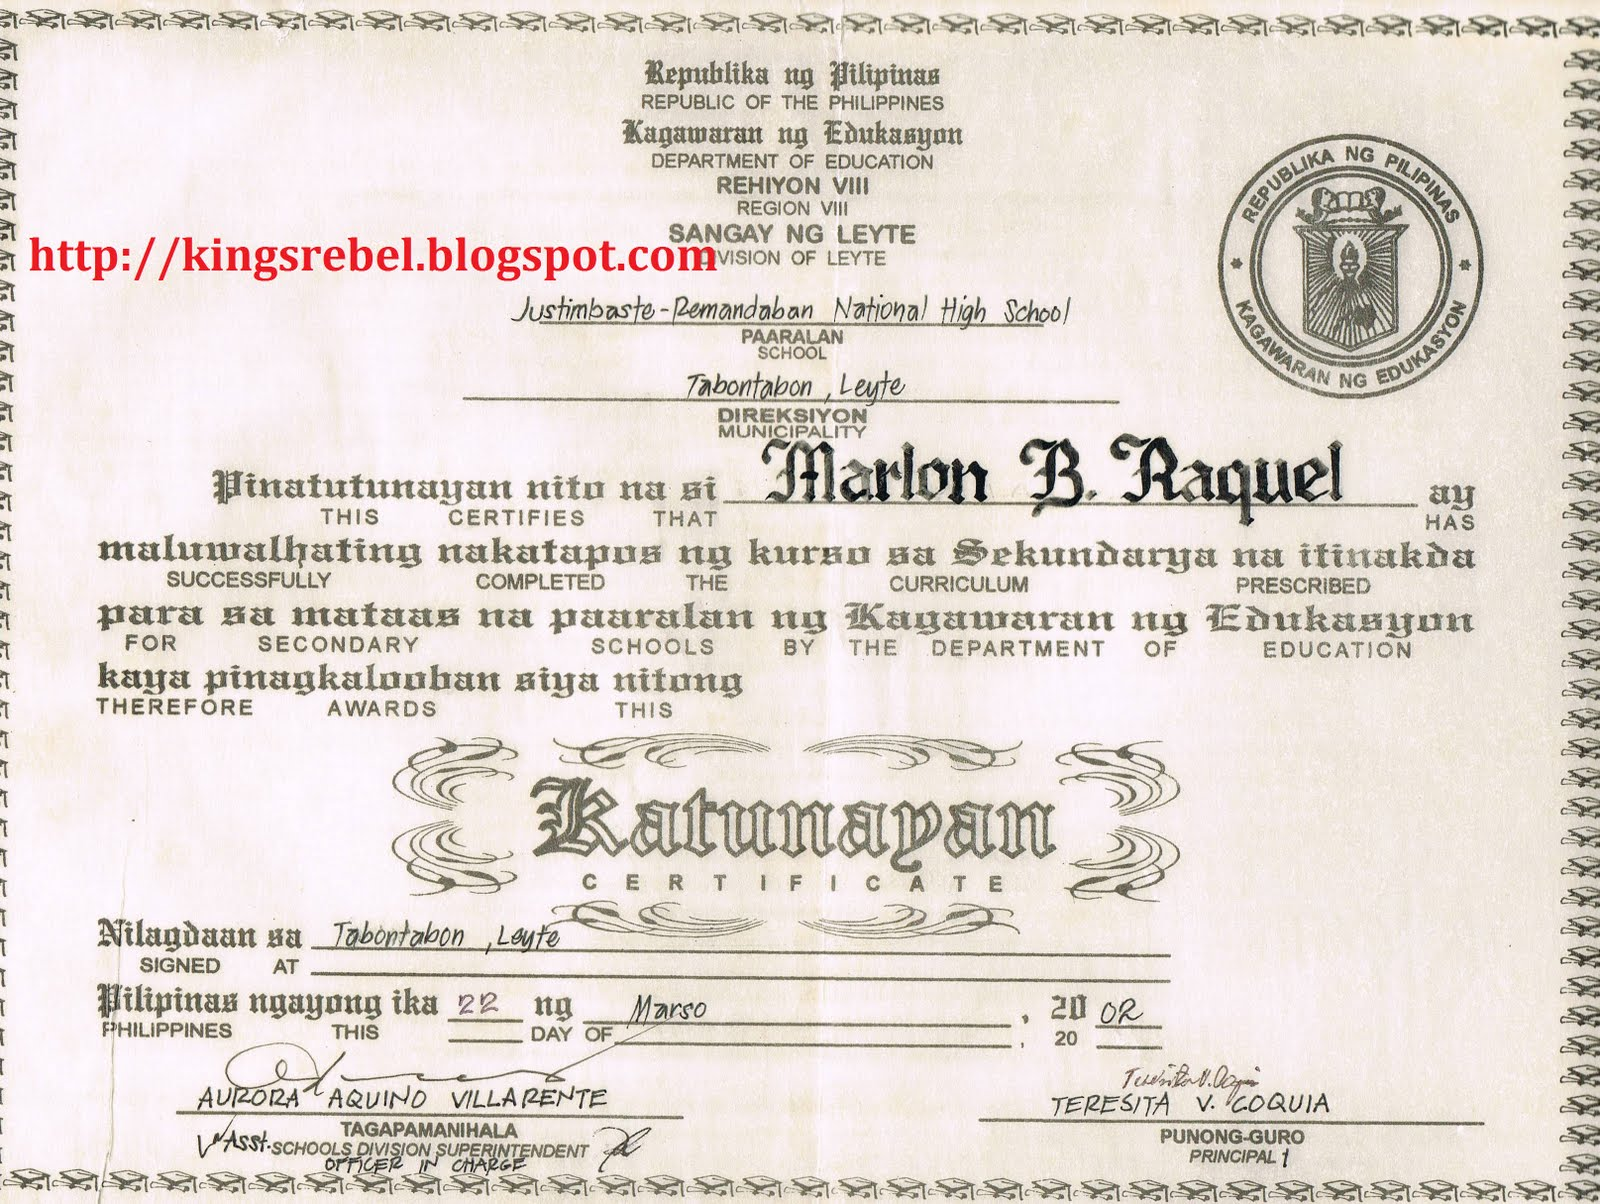 Tidbits and bytes example of high school diploma justimbaste tidbits and bytes example of high school diploma justimbaste remandaban national high school yelopaper Images